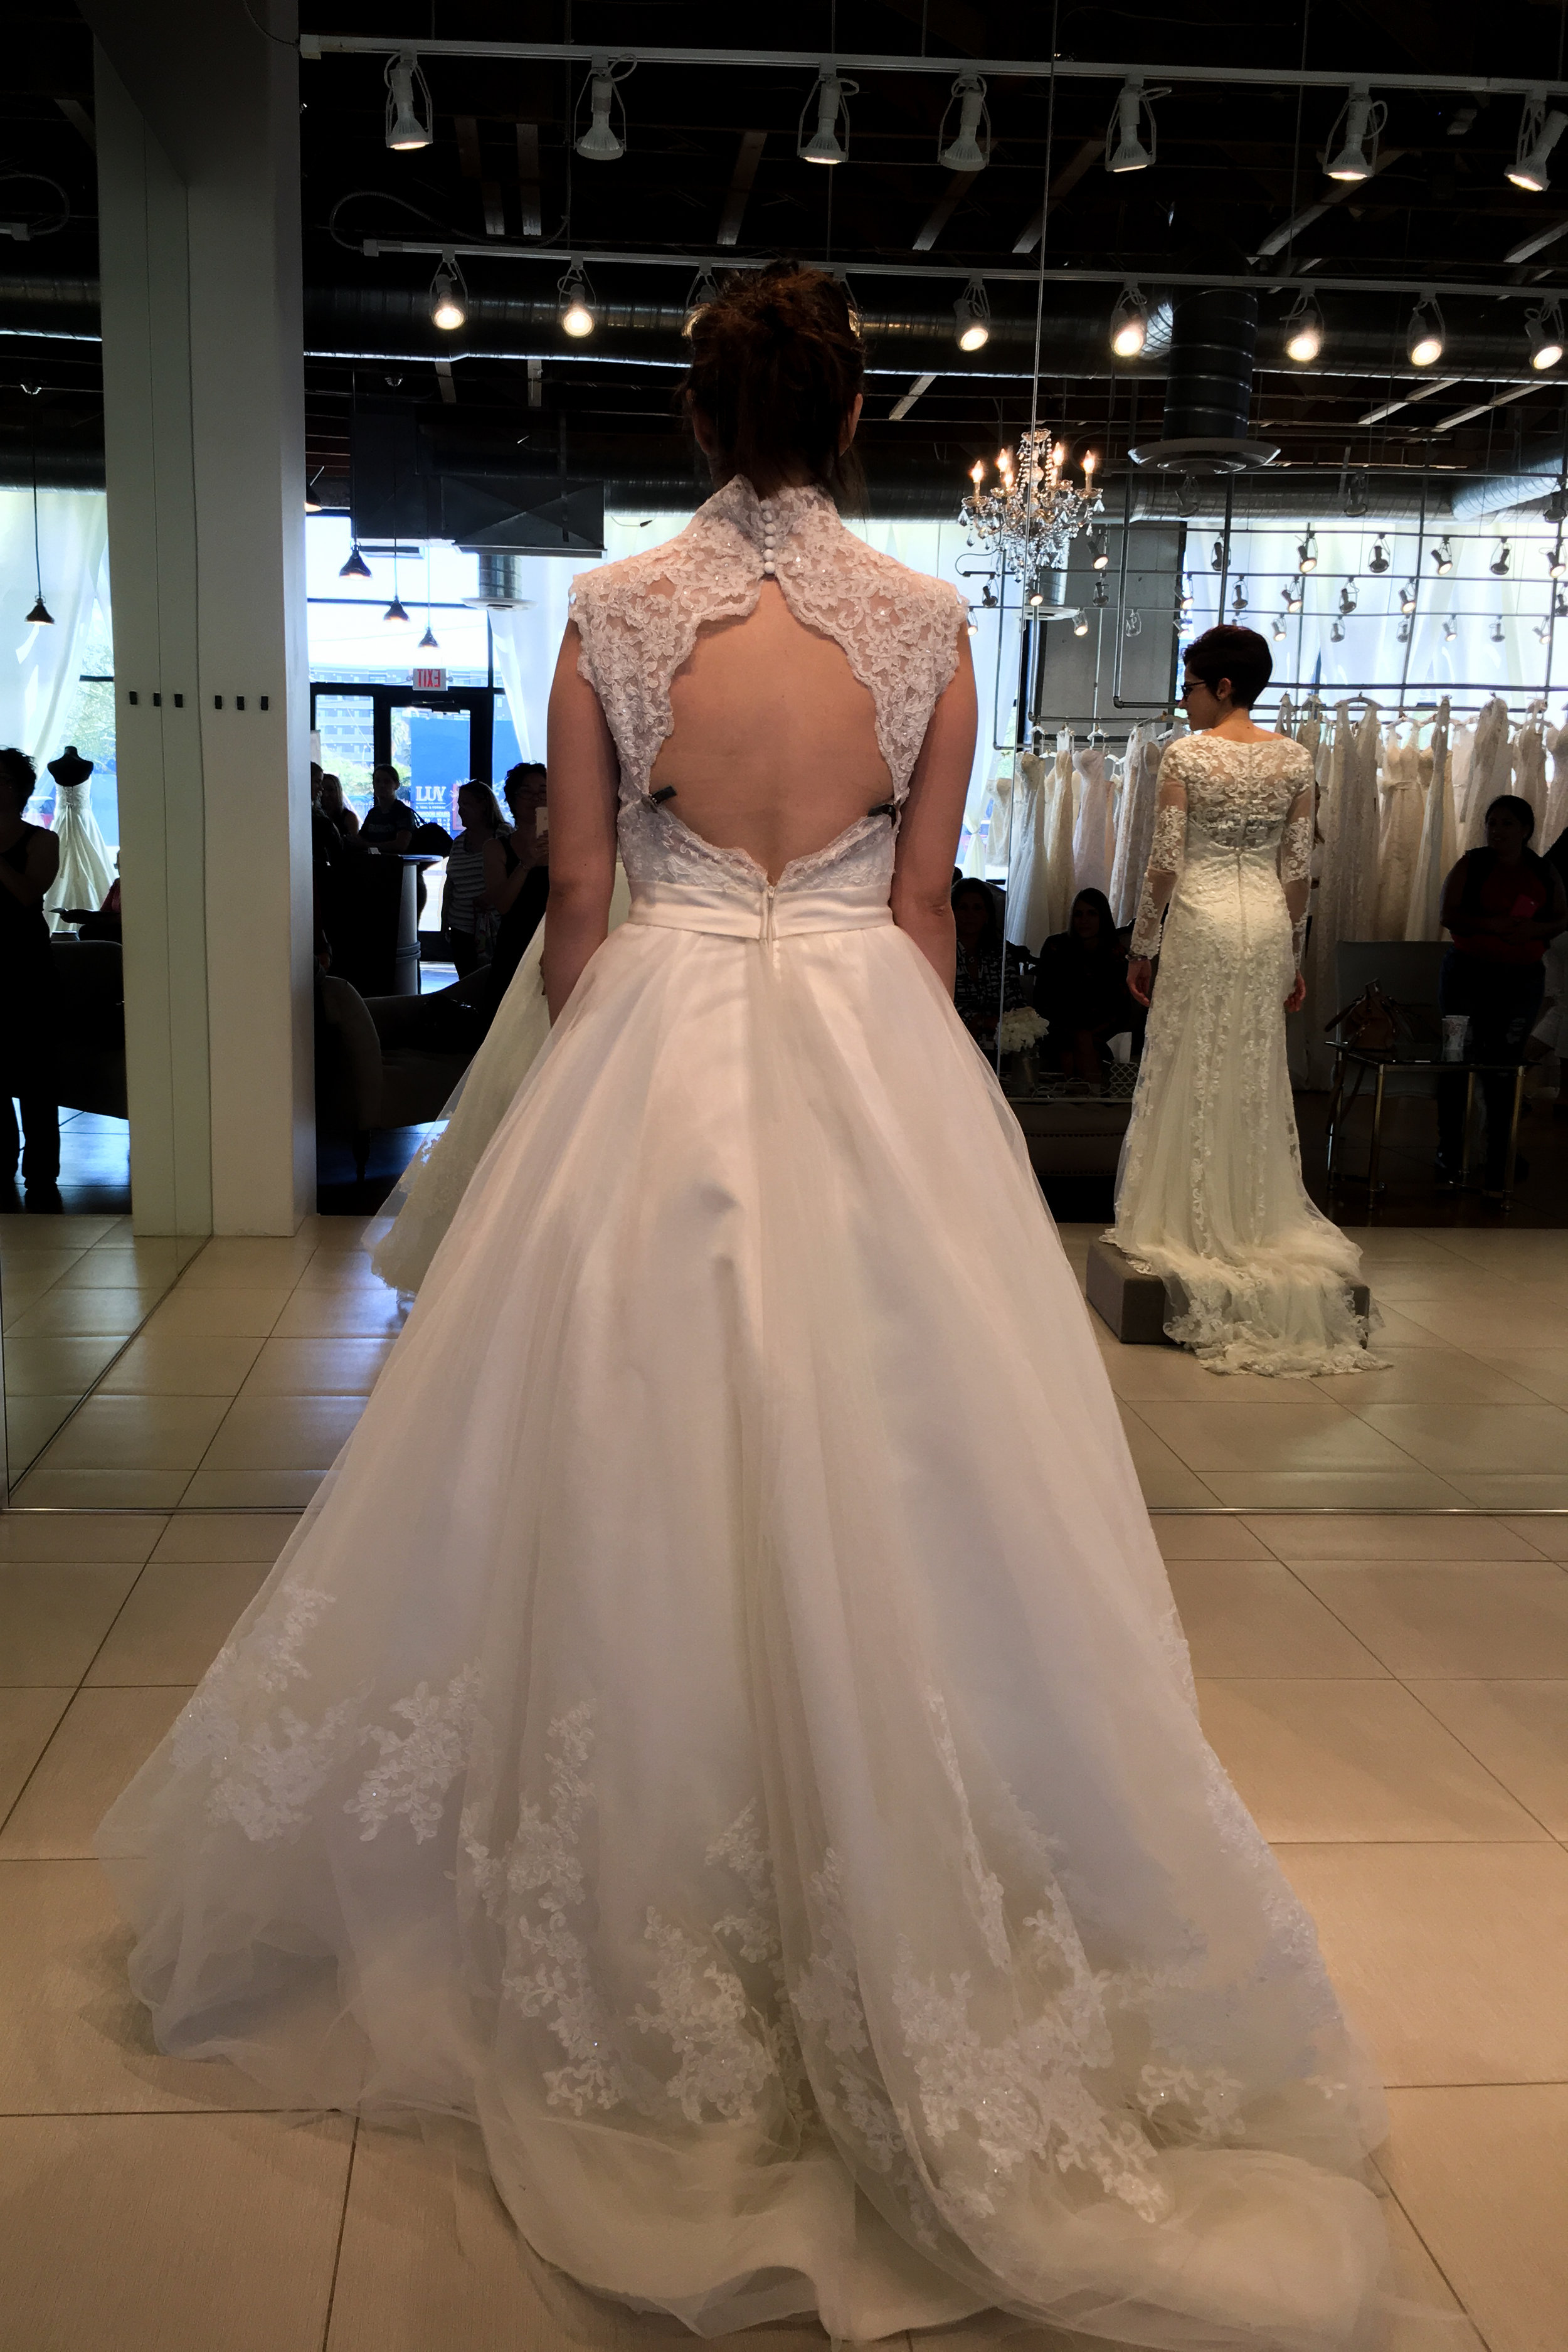 A beautiful gown at Luv Bridal, but not the one!